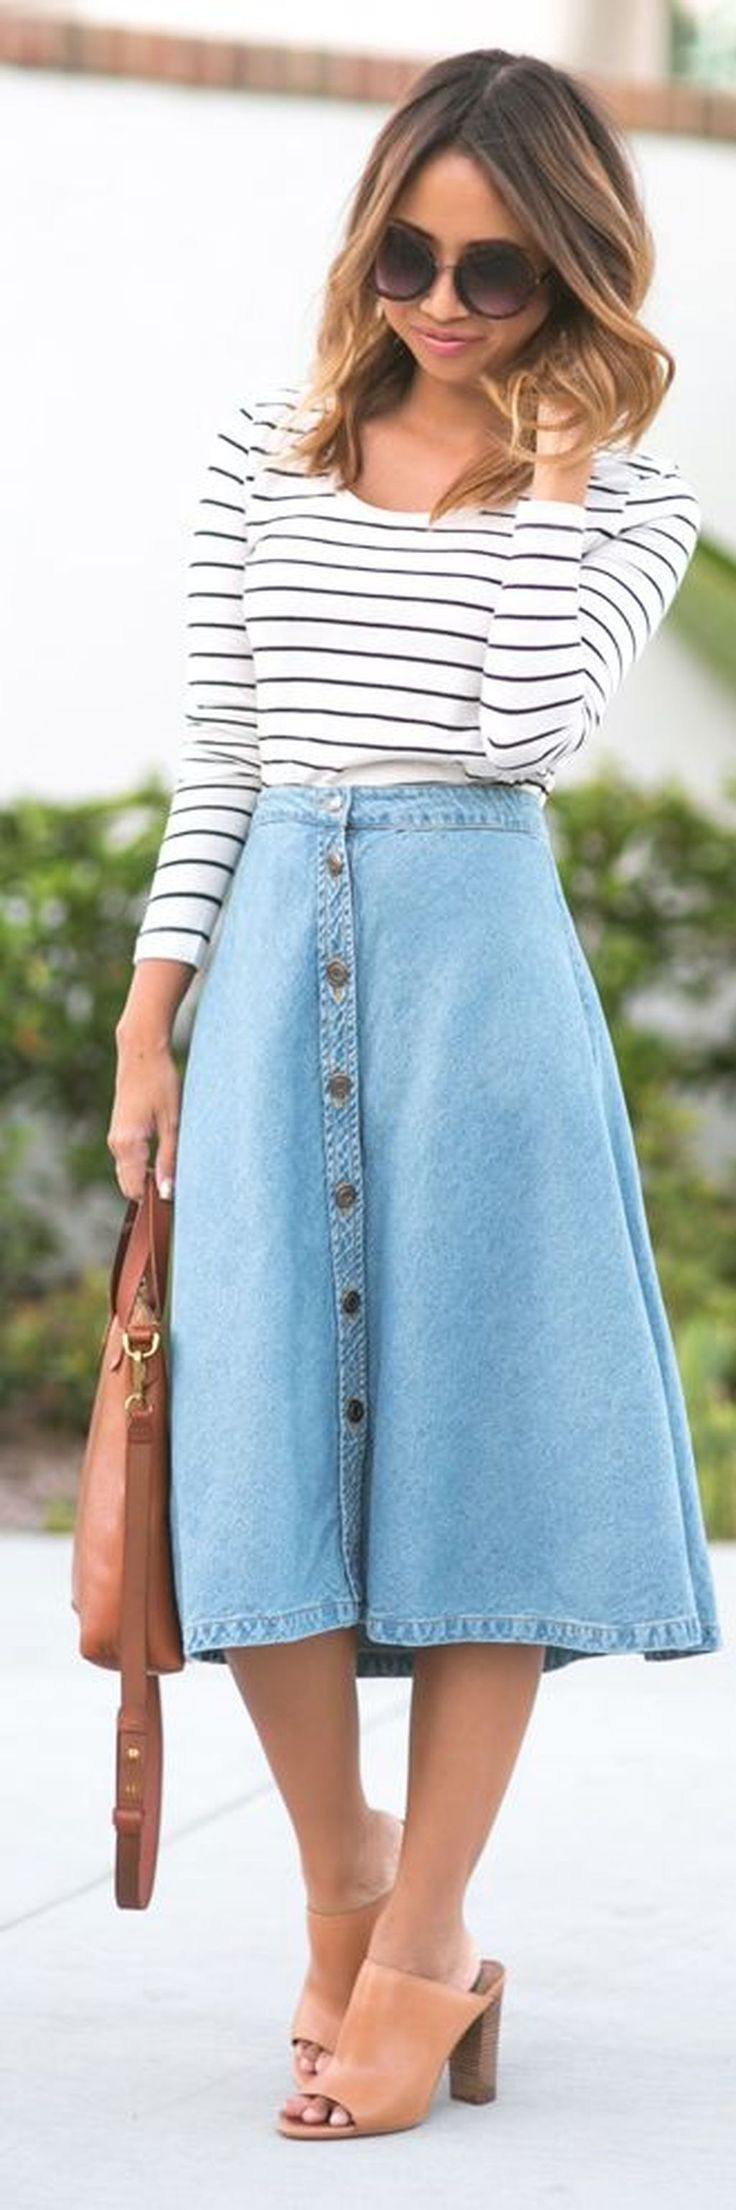 Awesome 40 Modest but Classy Skirt Outfits Ideas Suitable for Fall. More at http://aksahinjewelry.com/2017/09/06/40-modest-but-classy-skirt-outfits-ideas-suitable-for-fall/